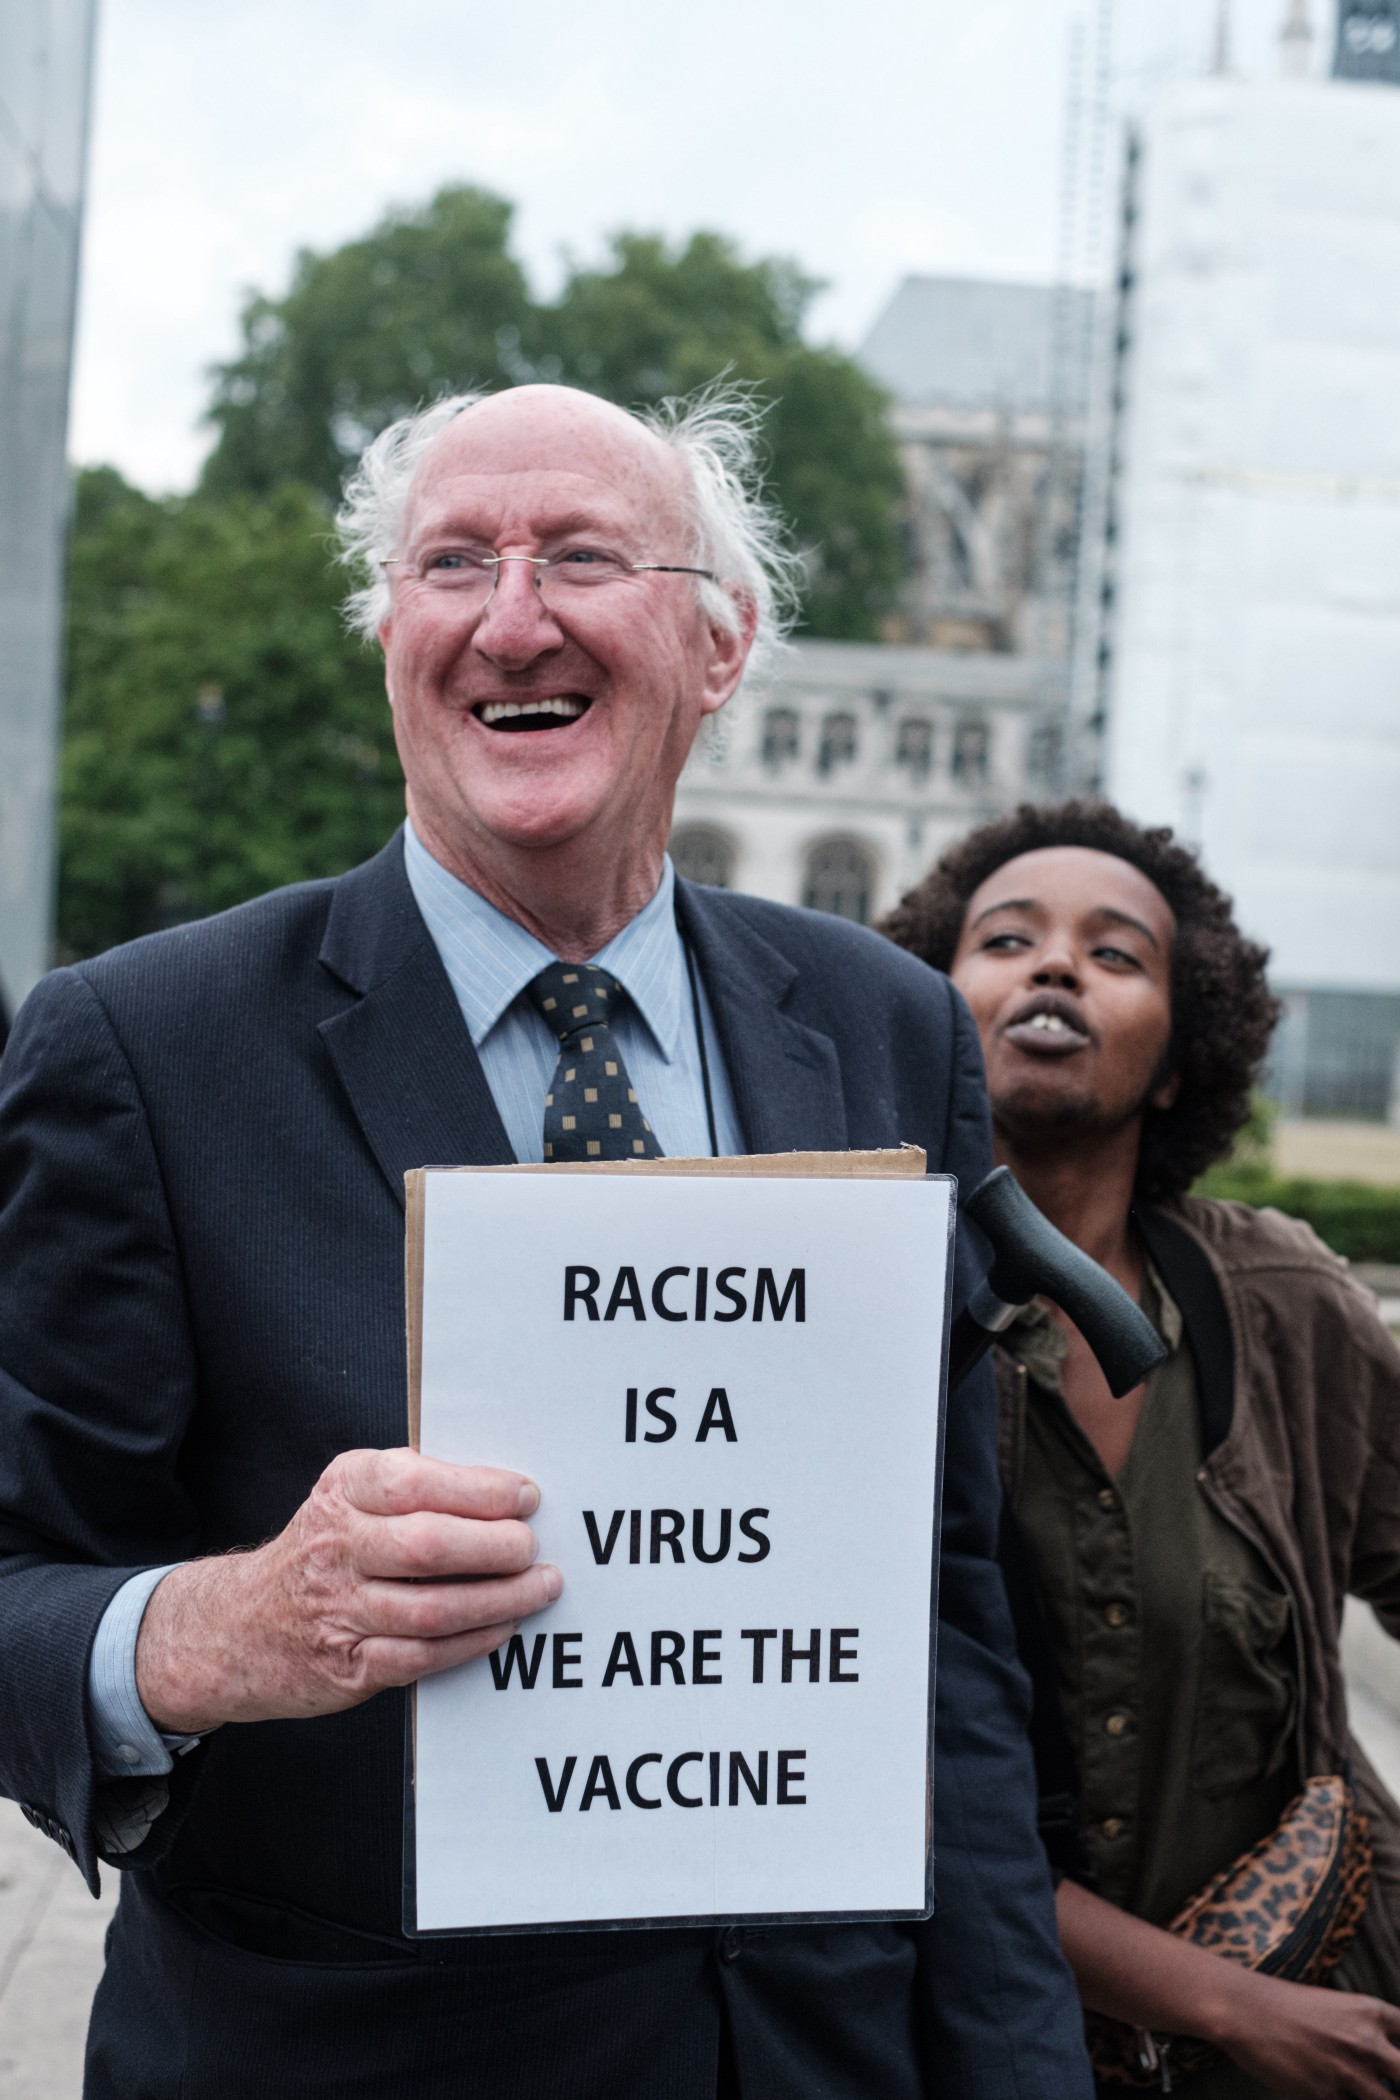 """White man holding a sign smiling and a black woman standing beside him. The sign reads """"Racism is a virus, we are the vaccine."""""""